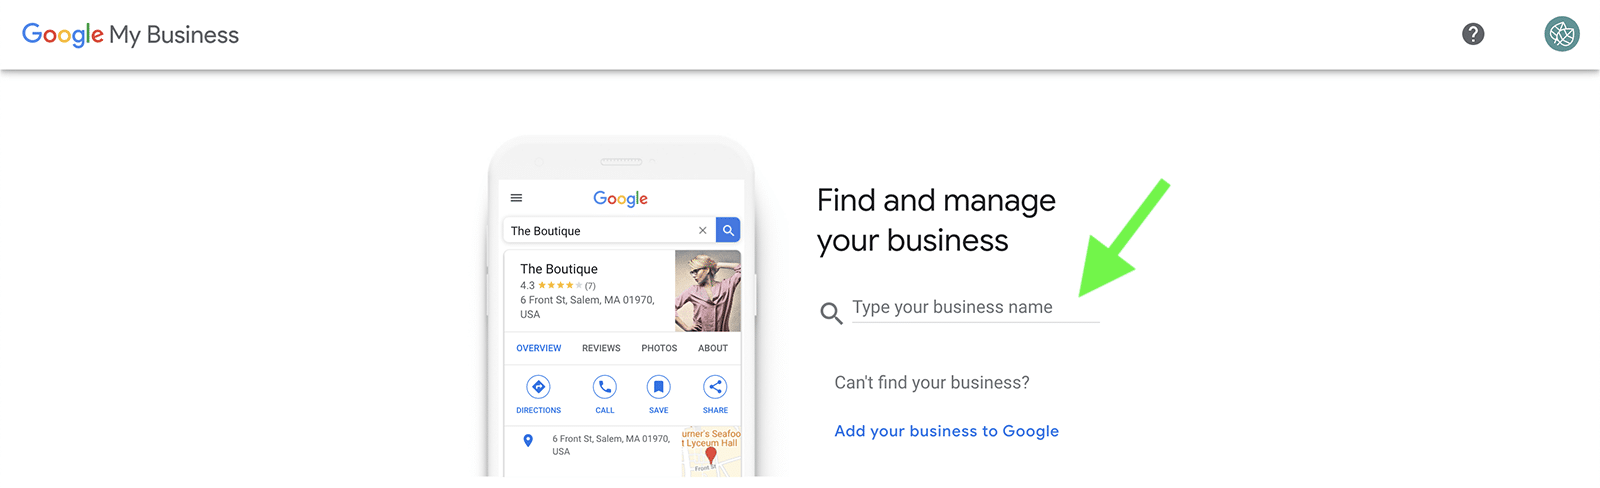 how to set up Google My Business - step 1